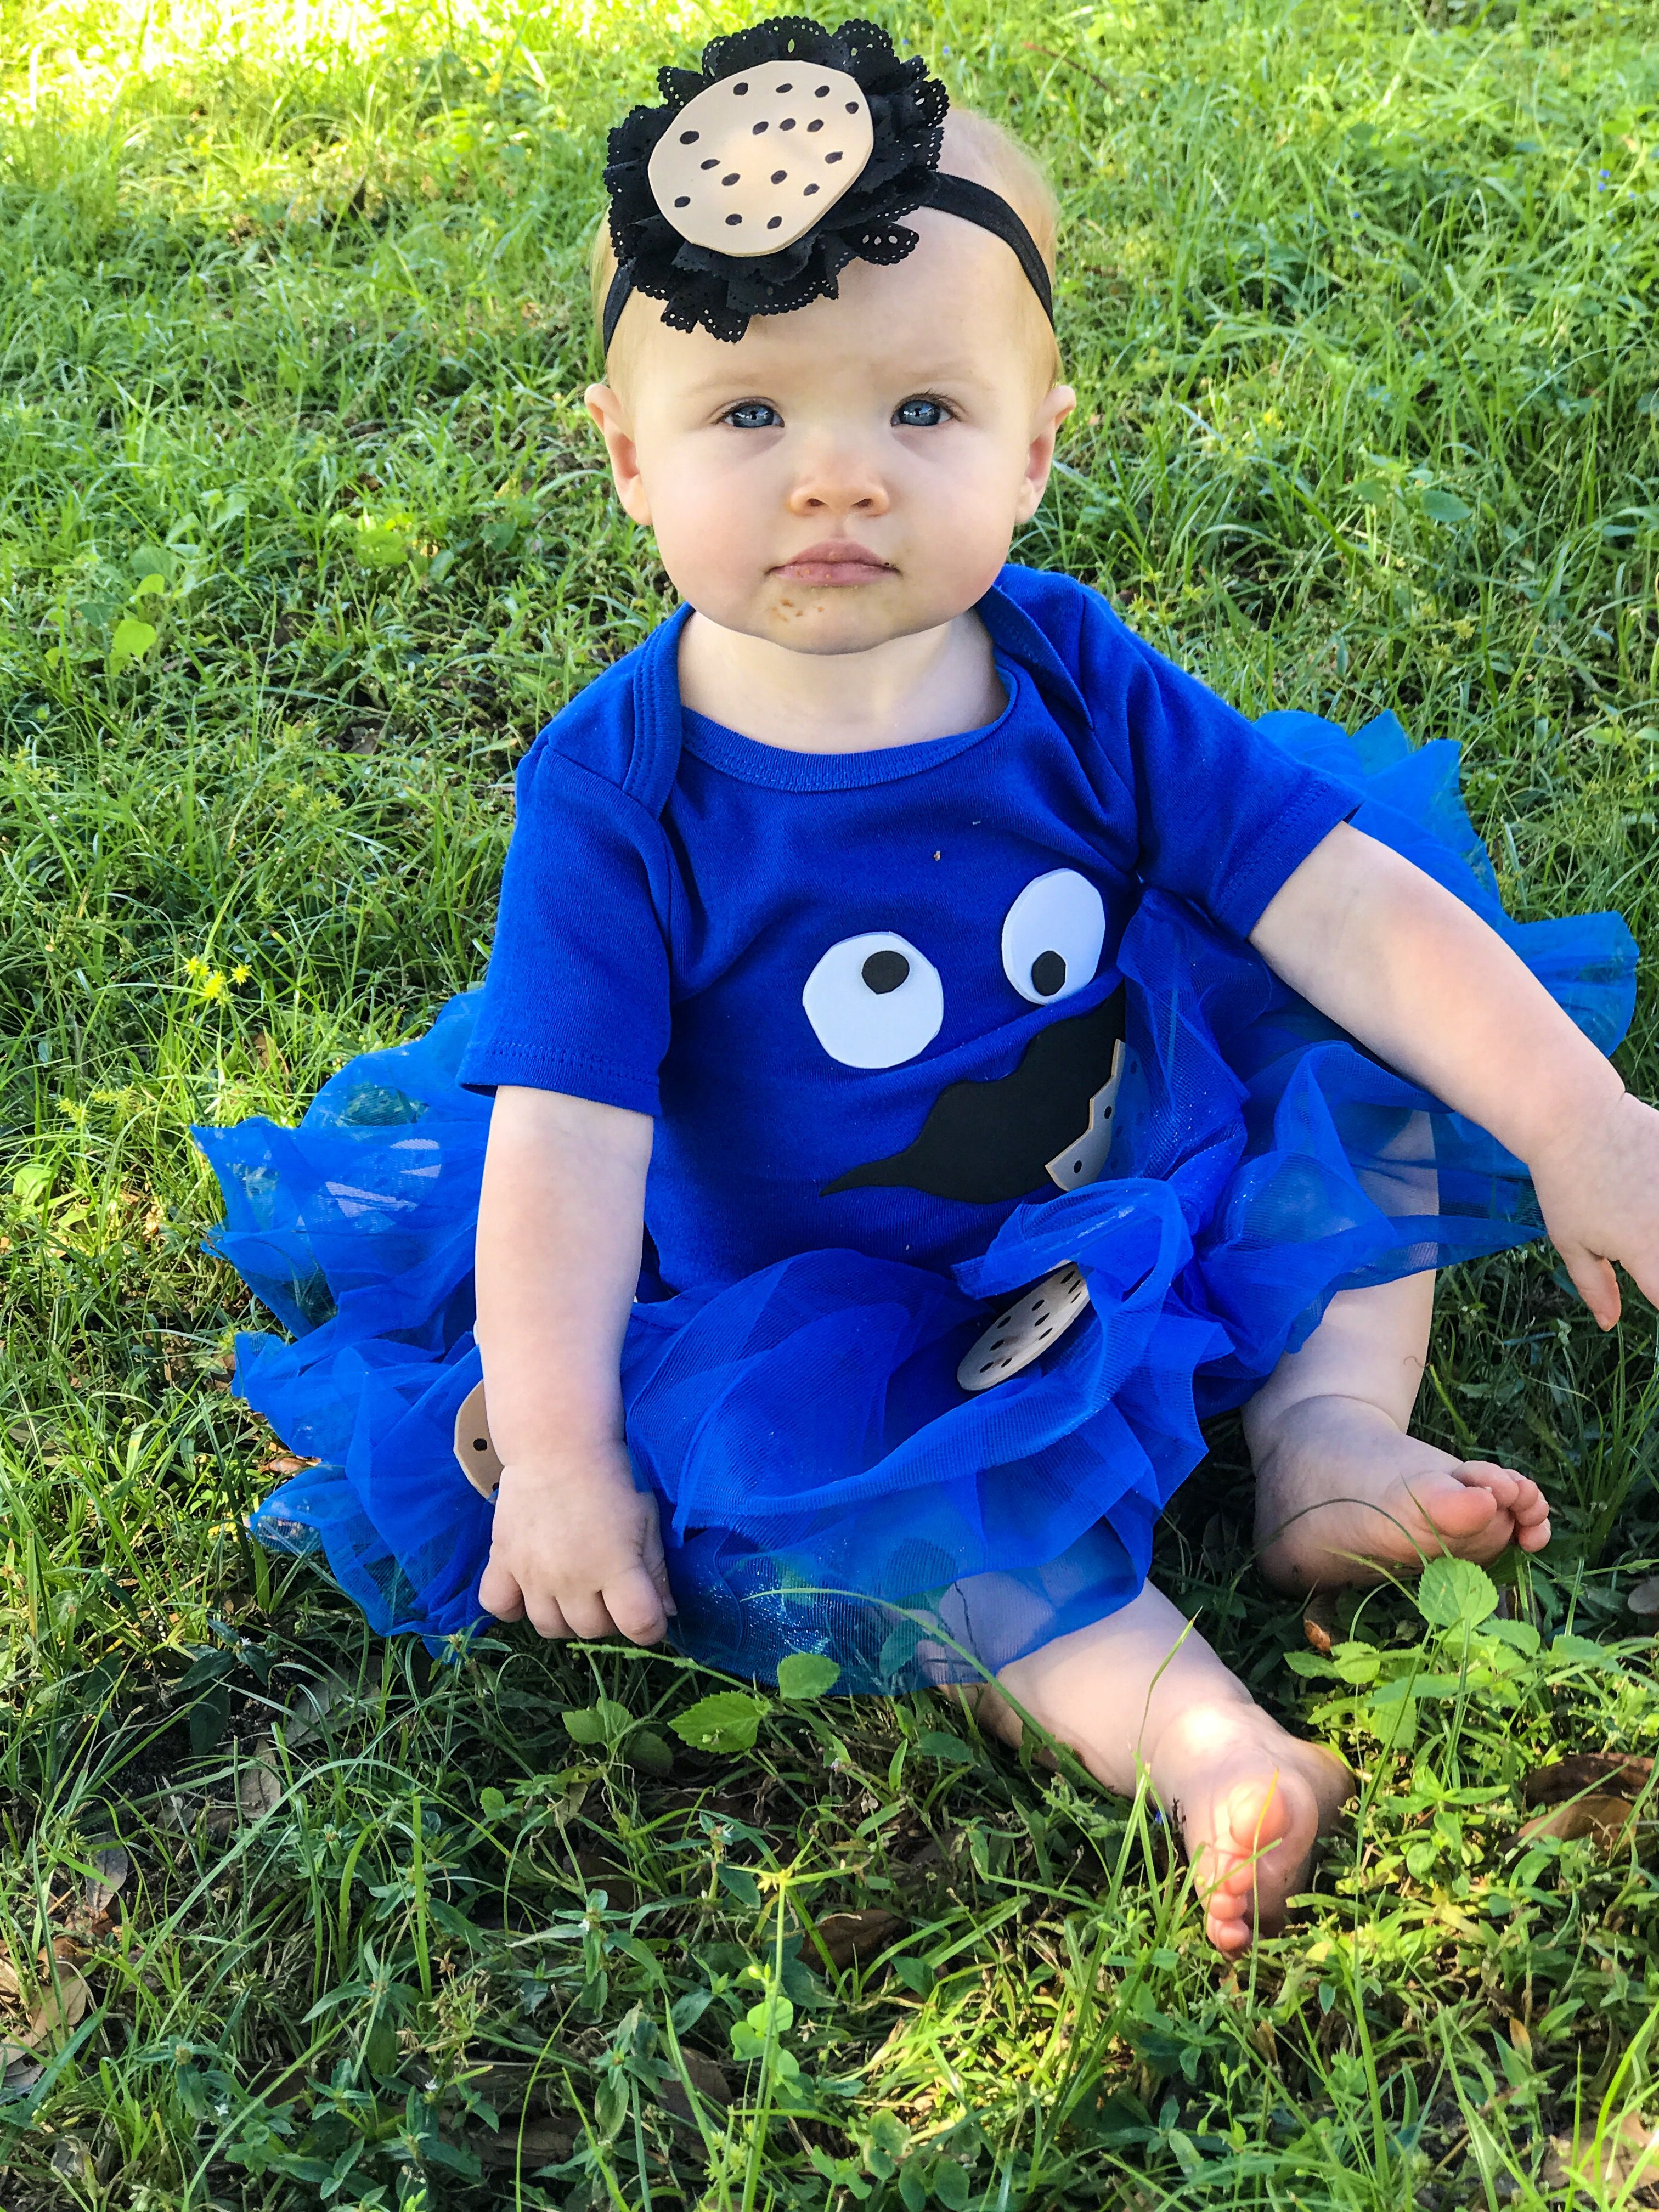 cookie monster halloween costume for 10 month old baby girl